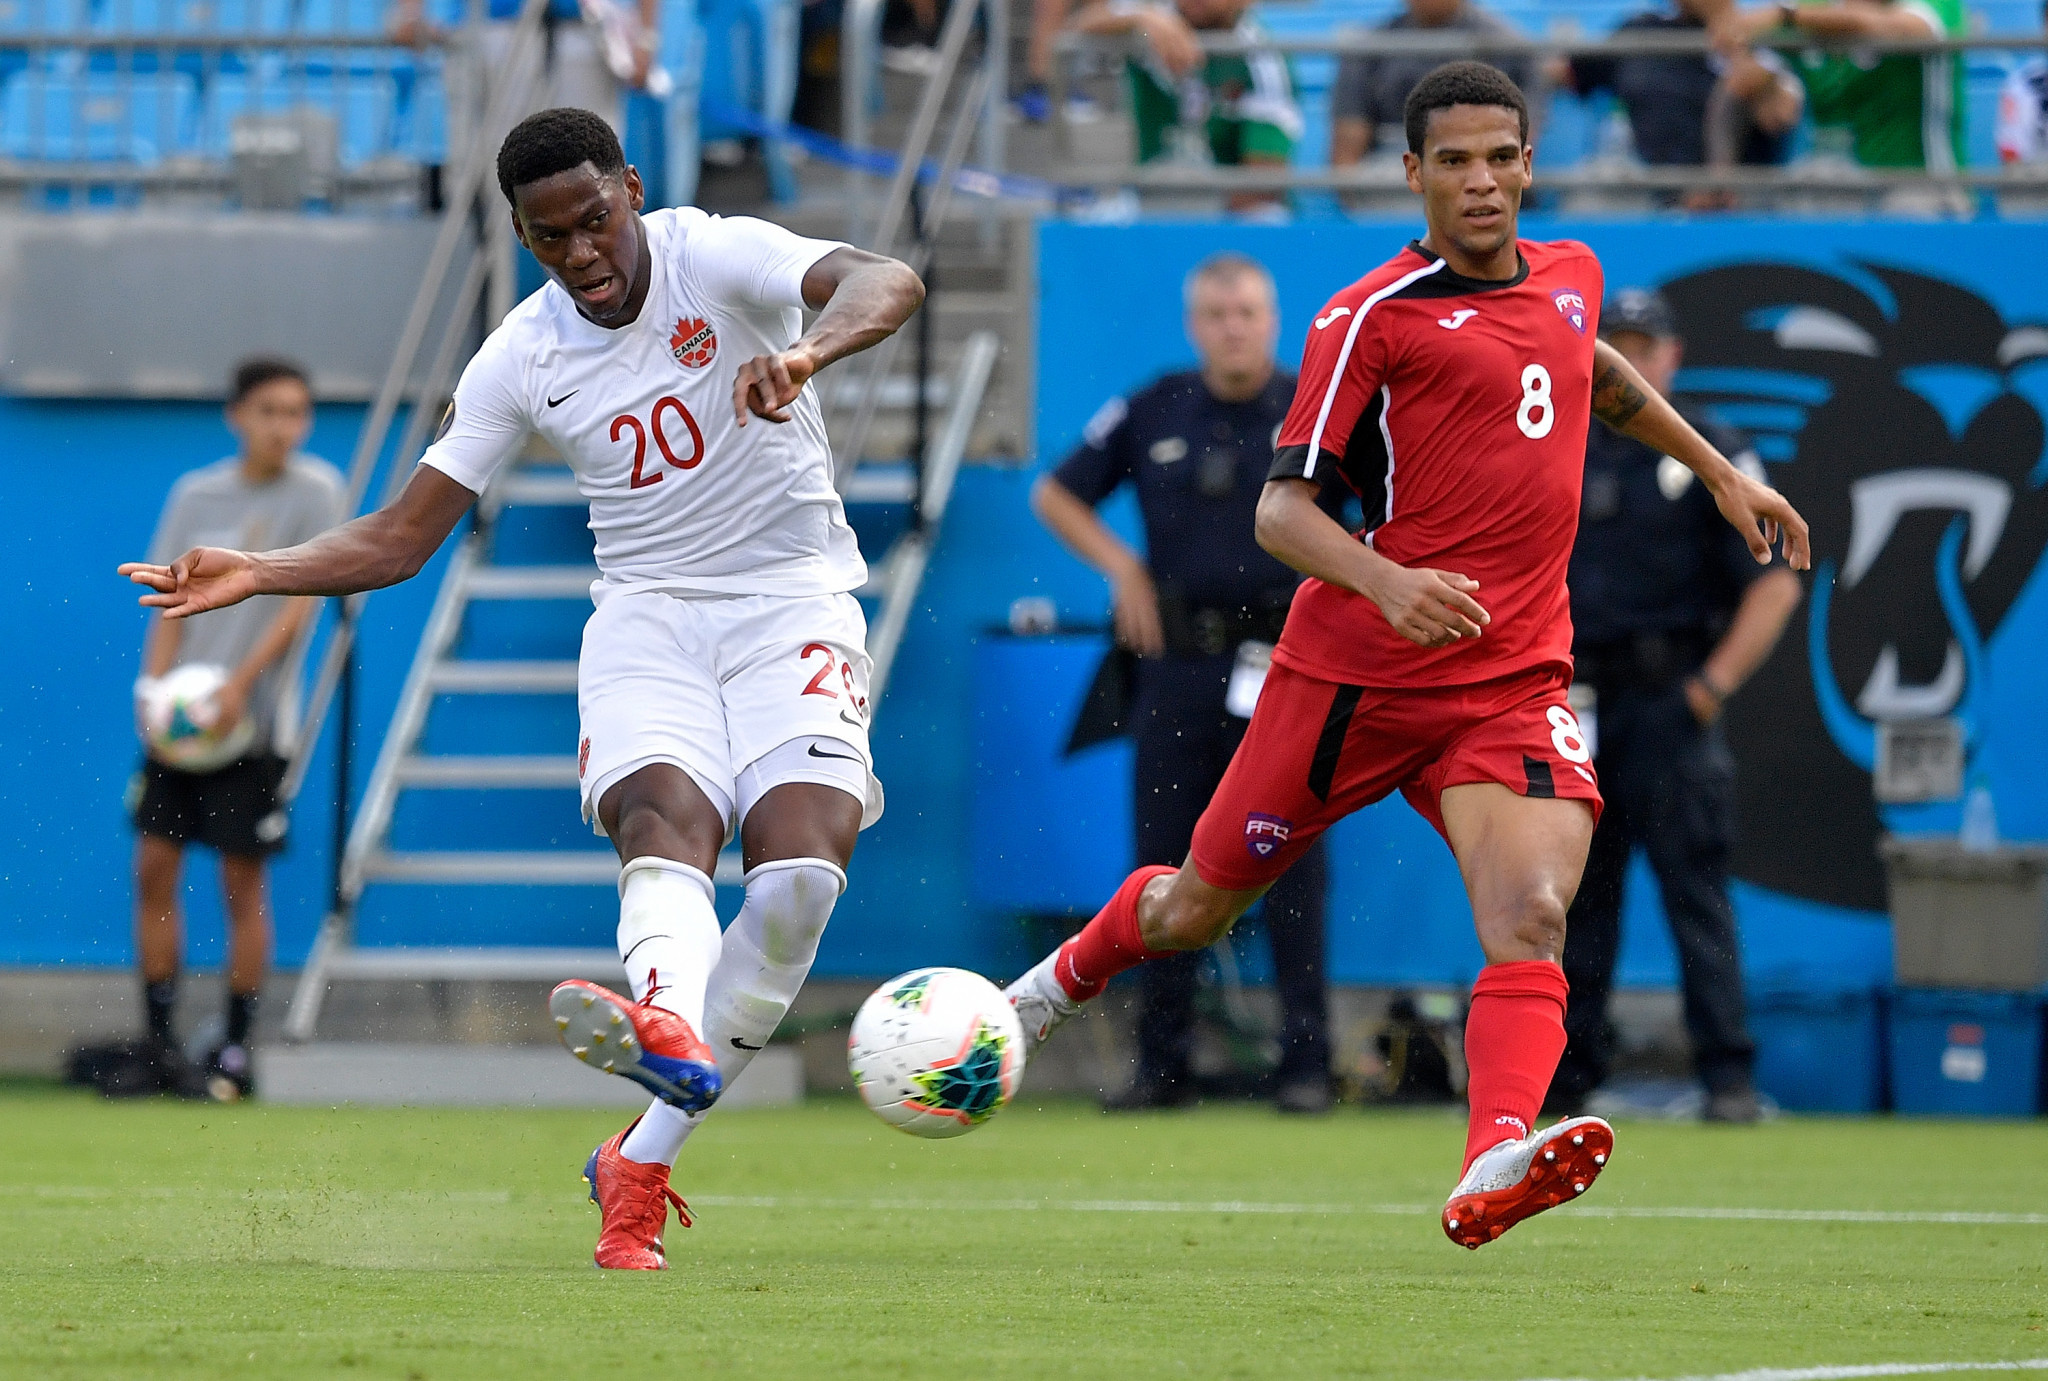 Canada thrash Cuba to reach Gold Cup quarter-finals